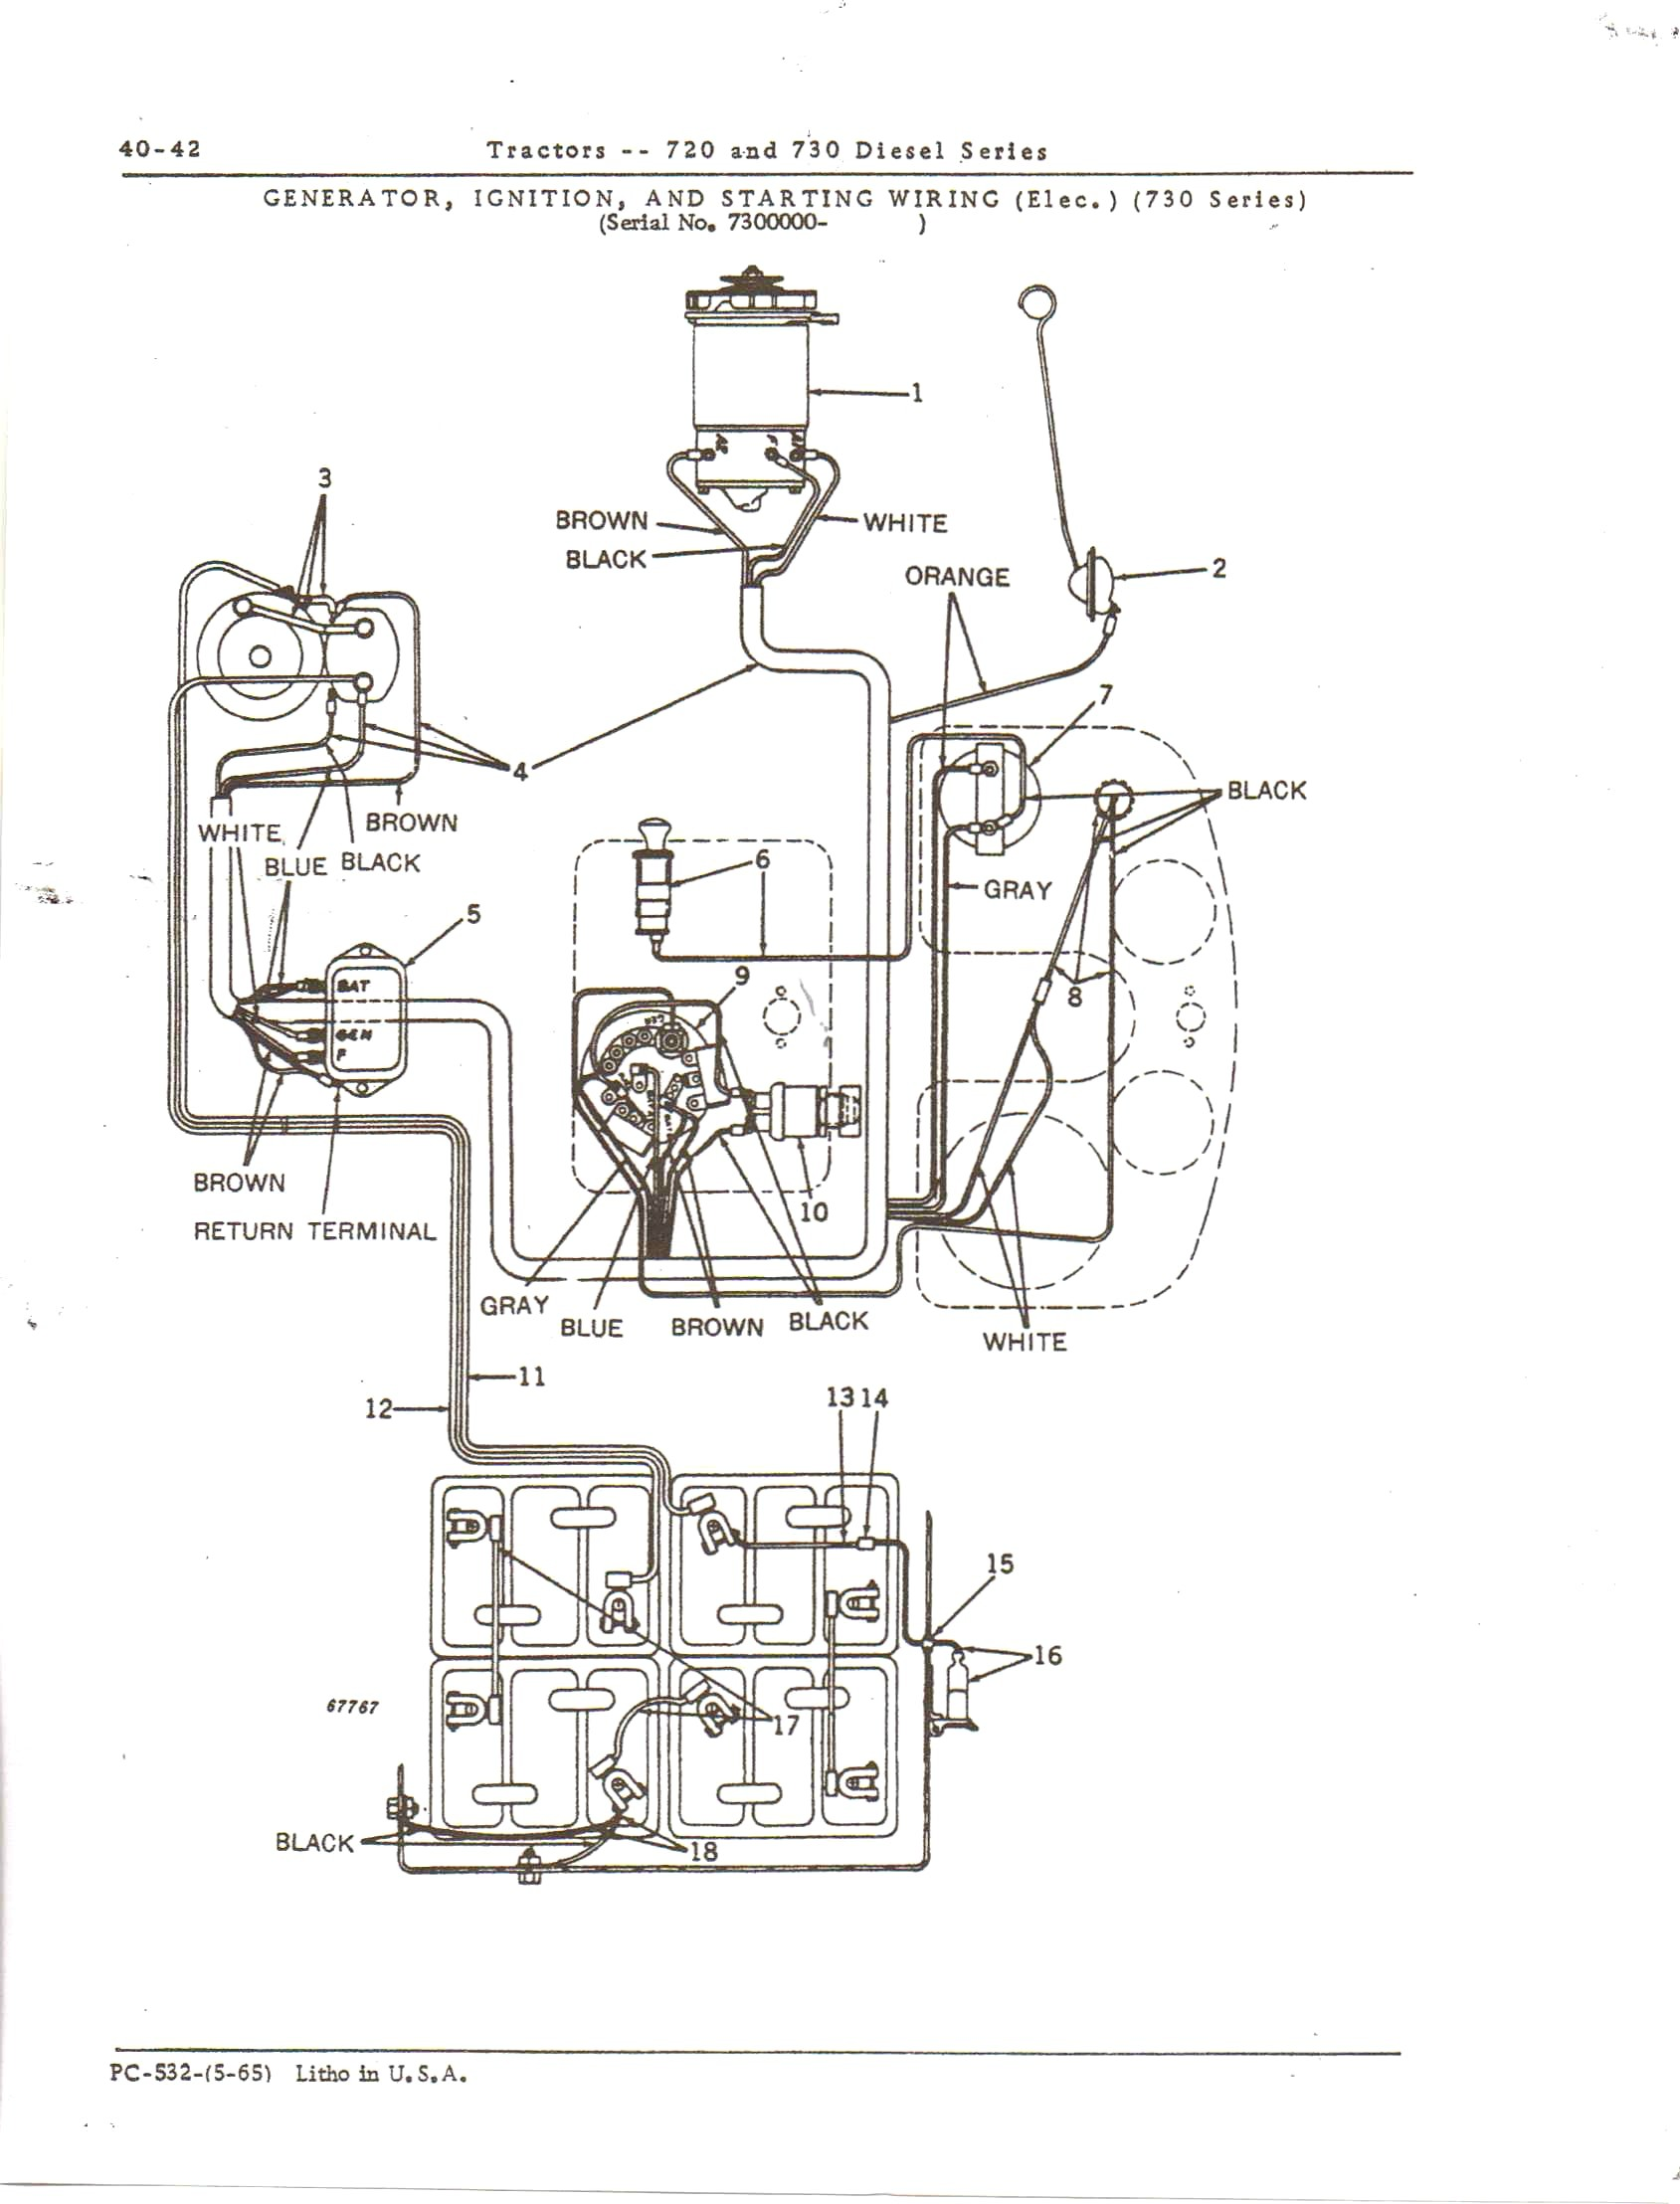 Perfect John Deere Wiring Diagram Download For 310 Collection ...